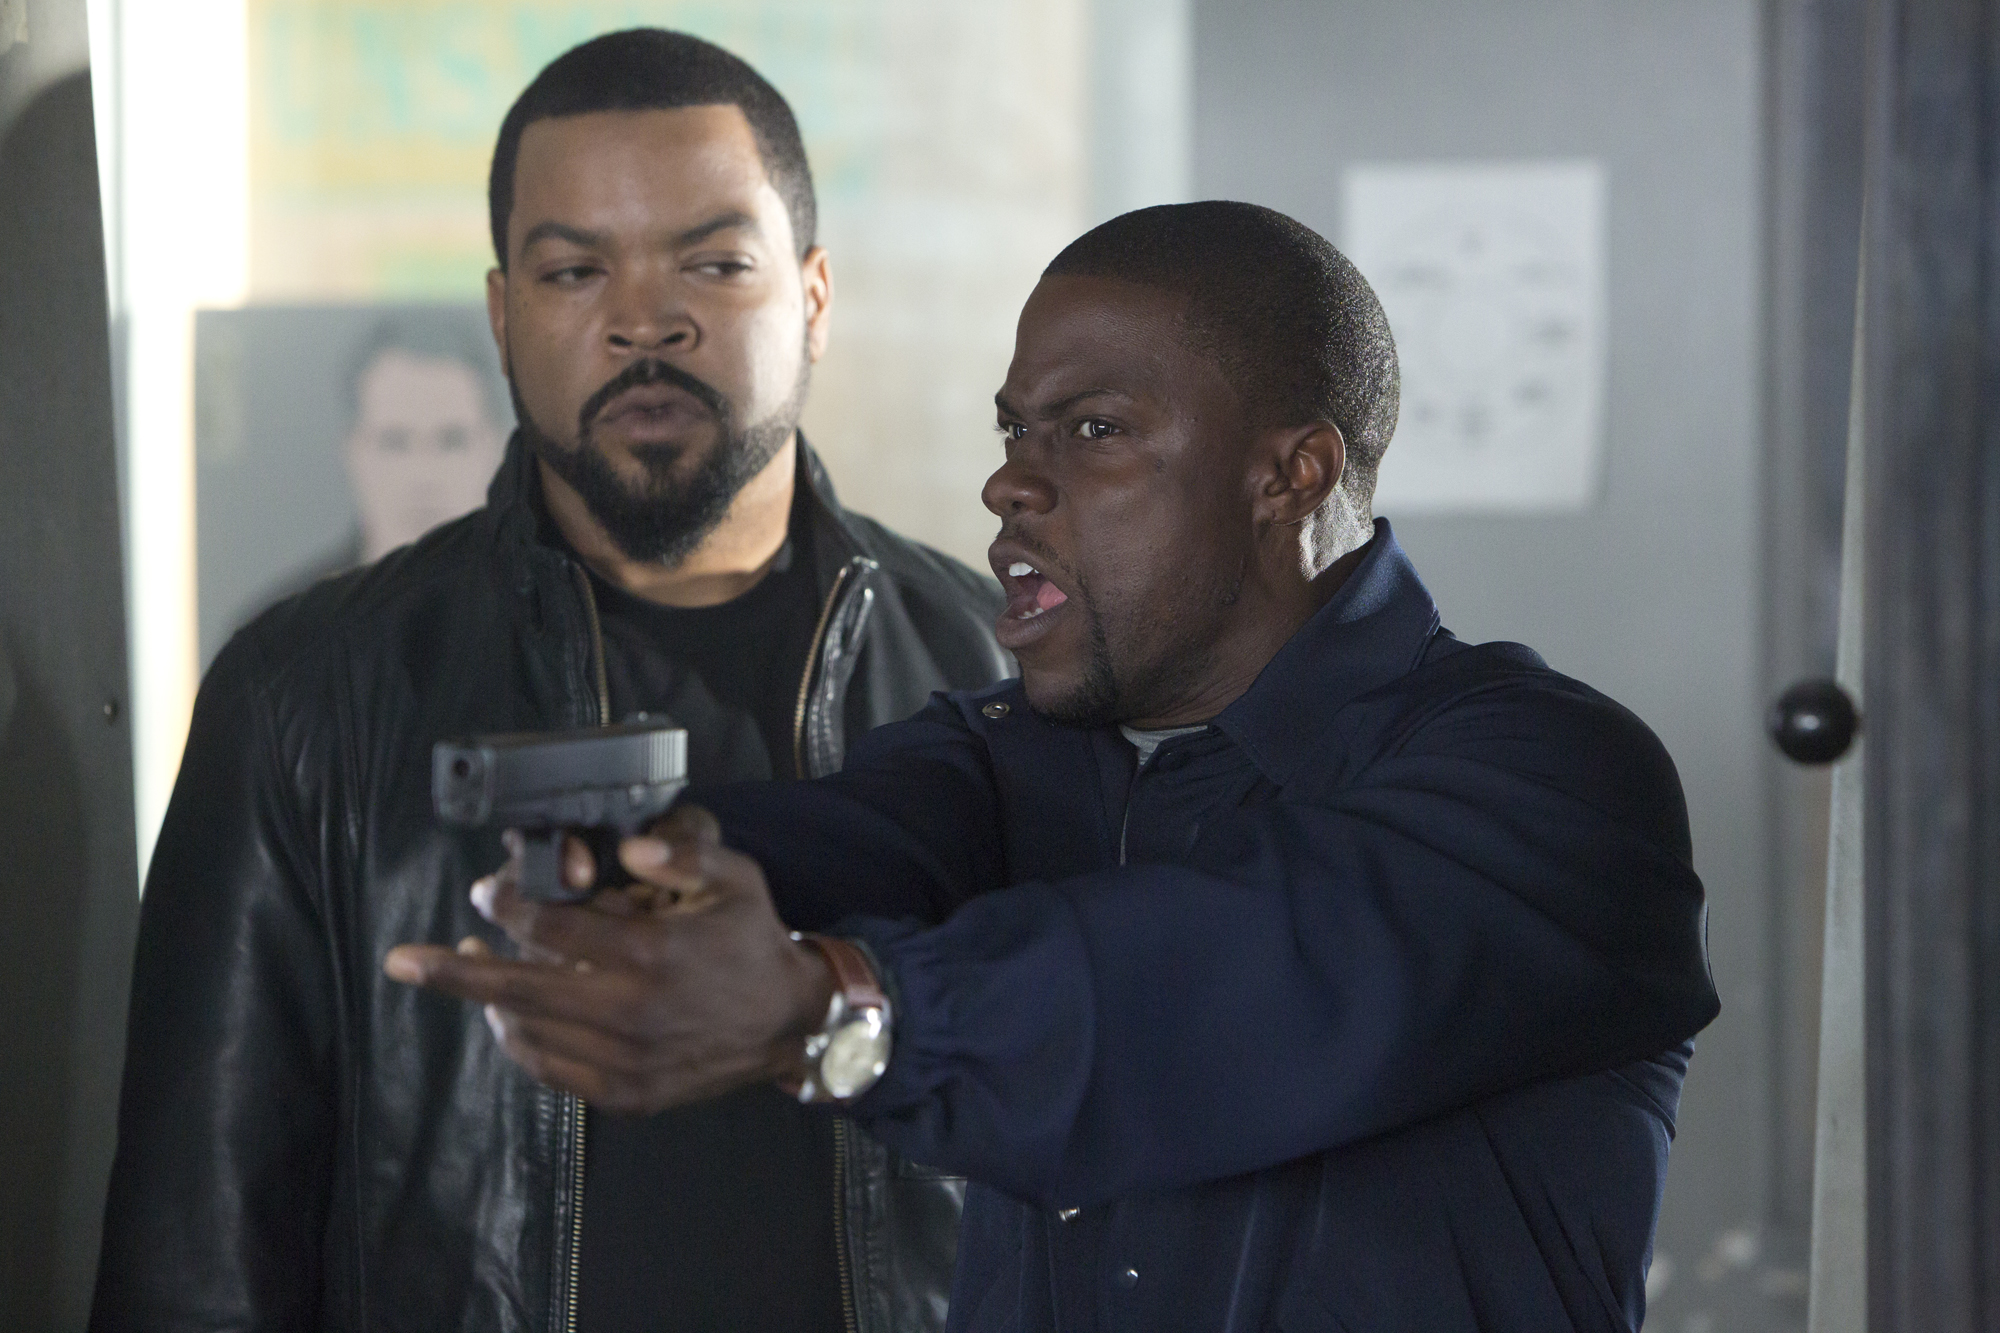 RIDE ALONG TOPS BOX OFFICE FOR A THIRD WEEK!